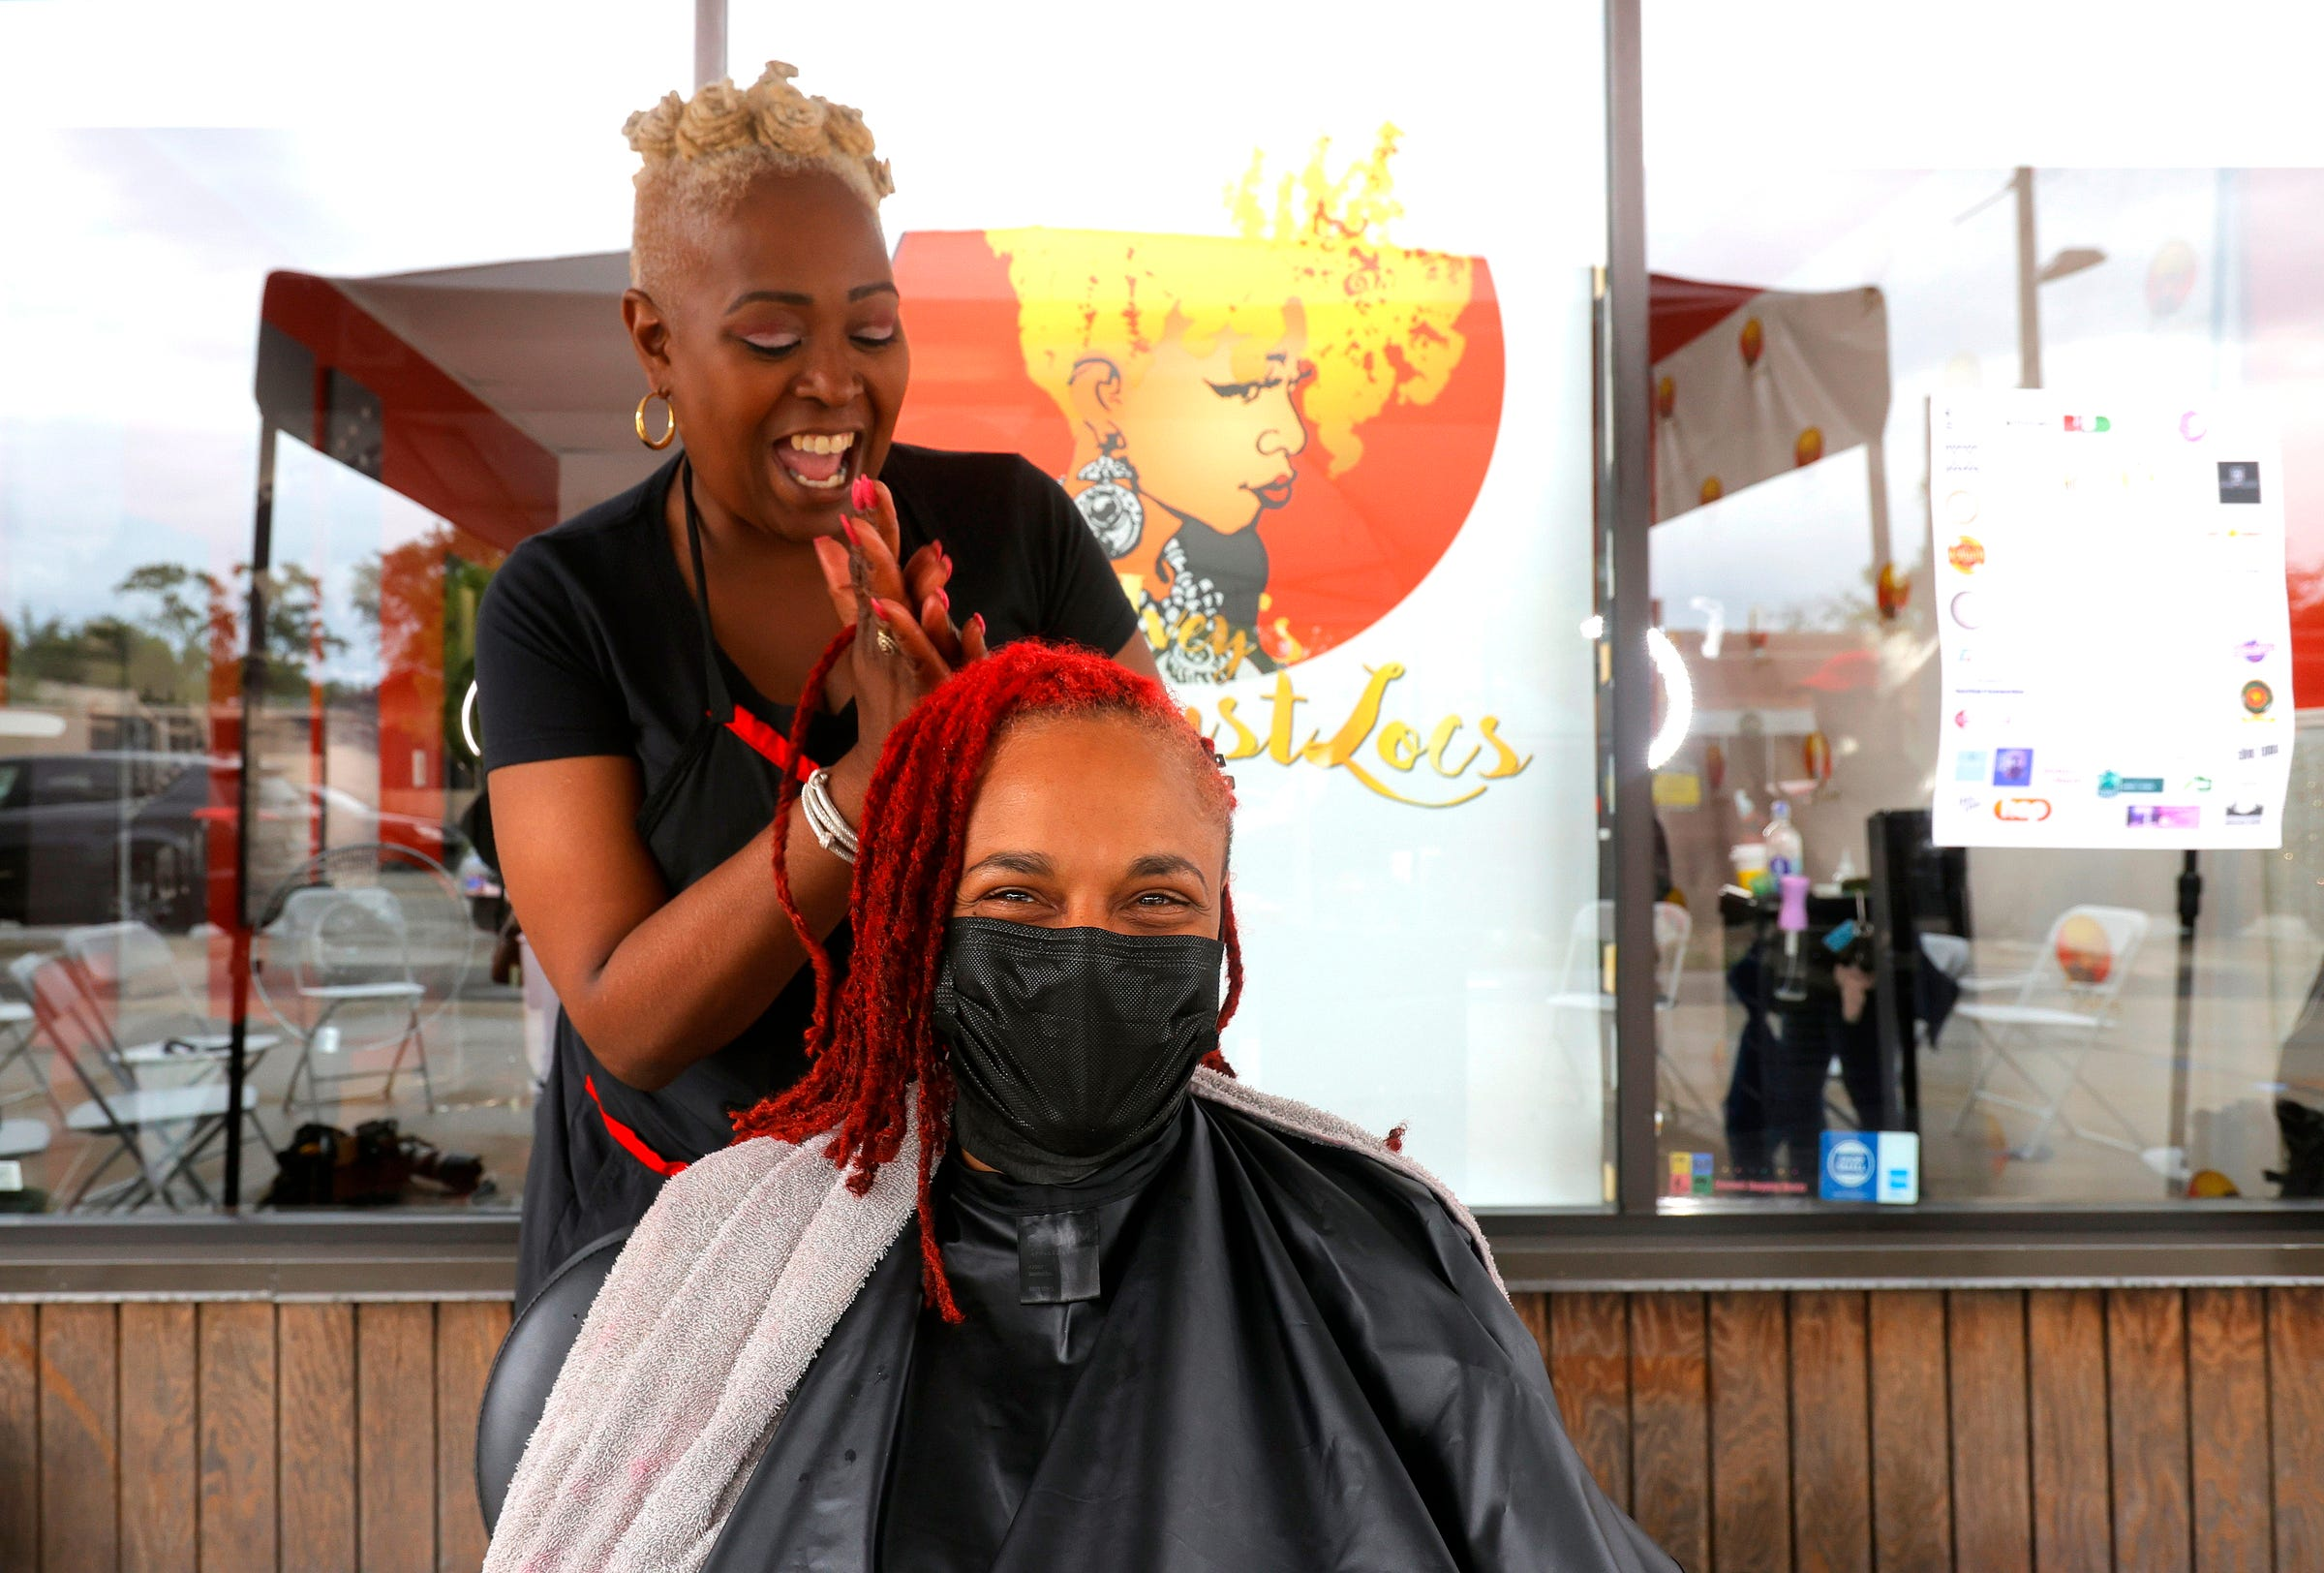 Sala Ivey, 50 of Royal Oak and owner of Knot Just Locs does the hair of long-time client Nichell Fowlkes, 46 of Detroit on the Avenue of Fashion on Livernois in Detroit on June 19, 2021. Ivey and many other business owners on Livernois participated in Juneteenth celebrations as pedestrians walked, window shopped and ate at some of the many restaurants up and down the avenue.